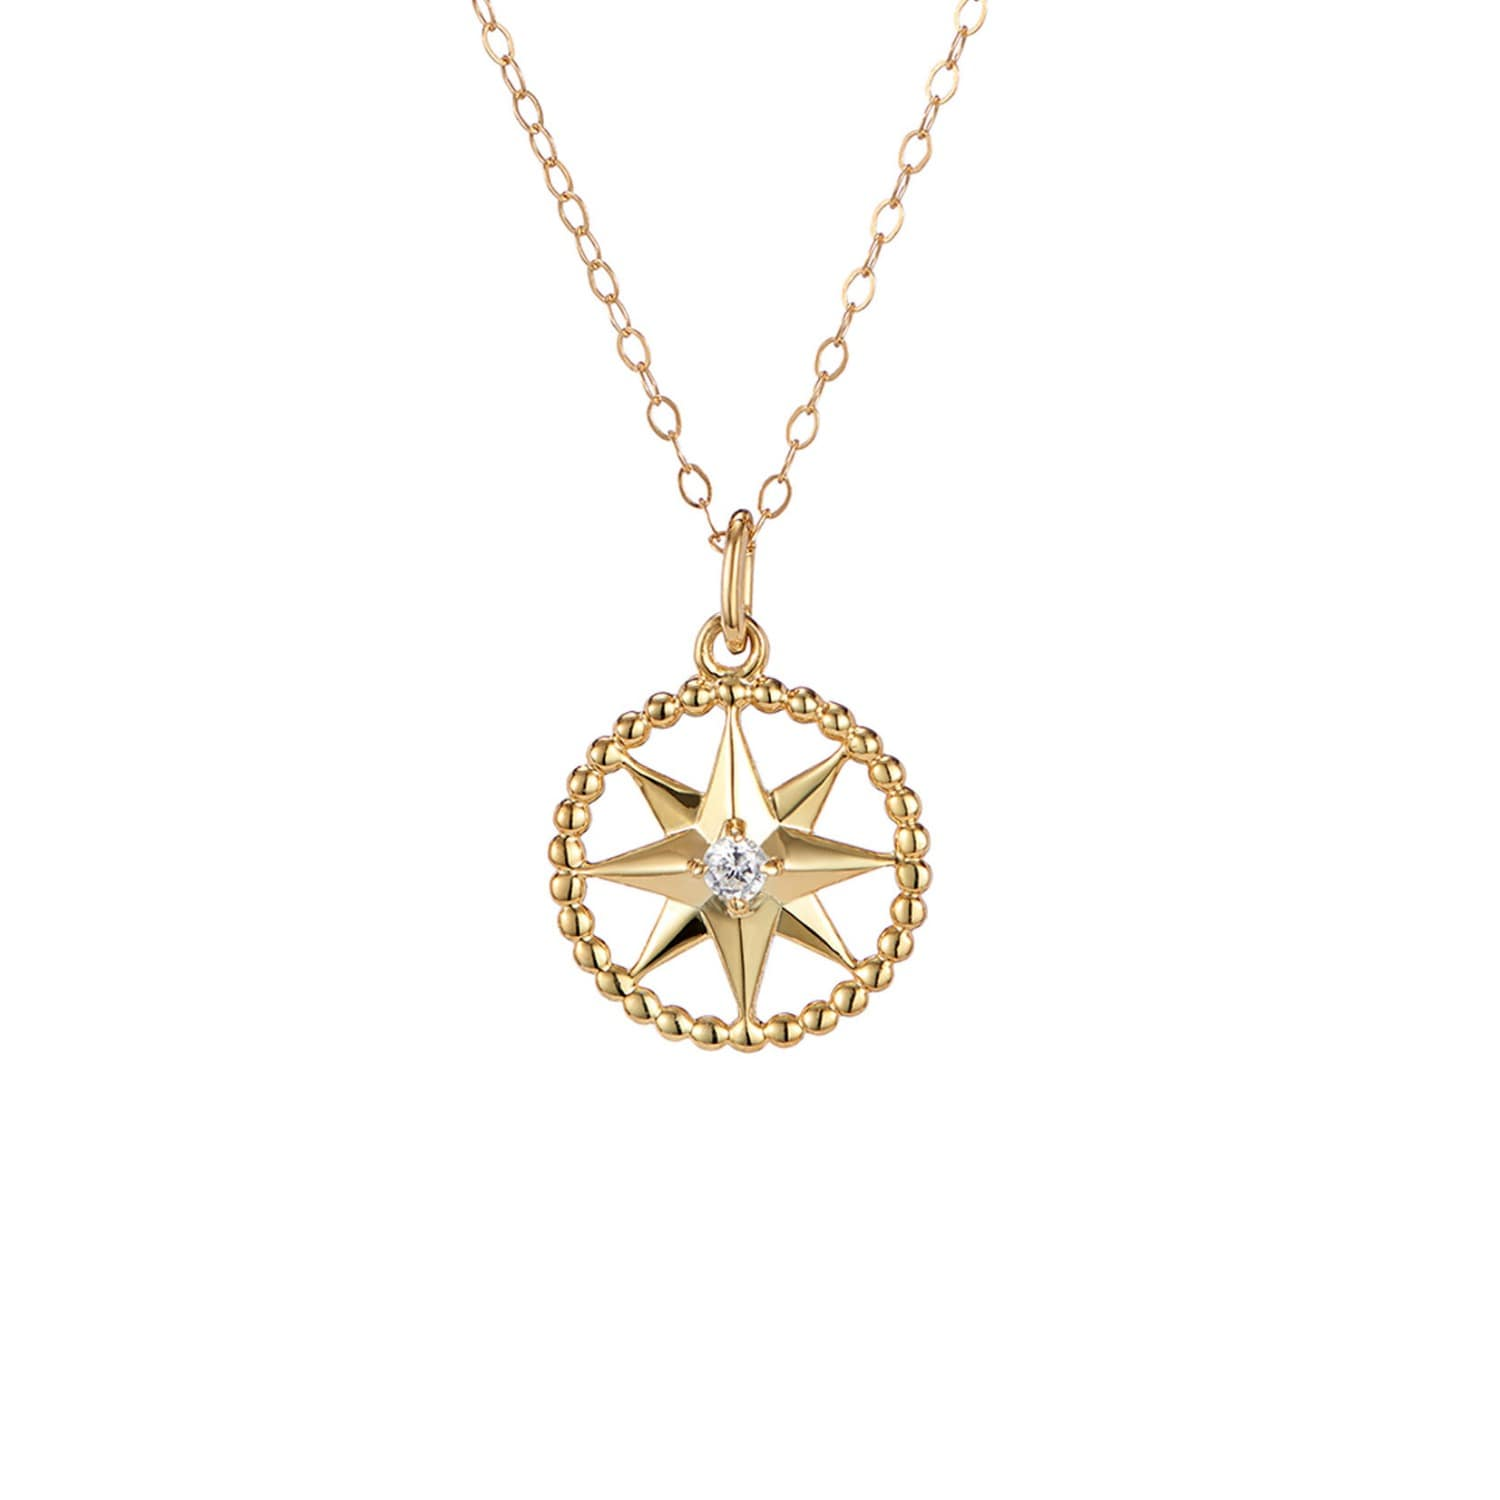 4289f6908c836 Crystal Star Charm Pendant In Gold On 14 Inch Choker Length Chain ...